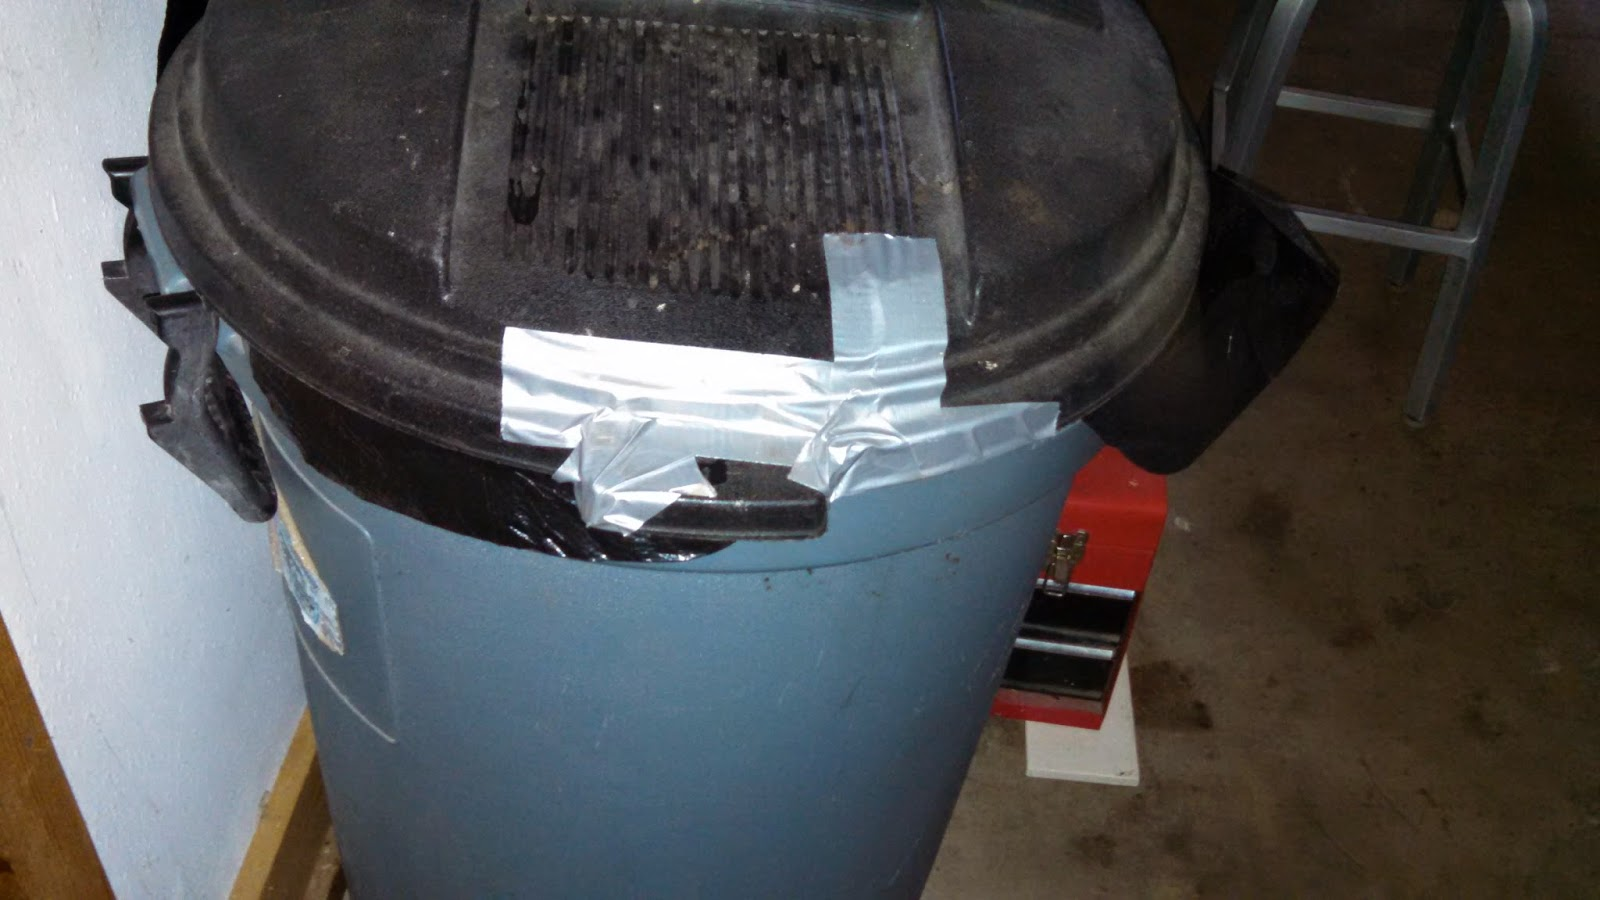 Garbage Can Repaired with Duct Tape